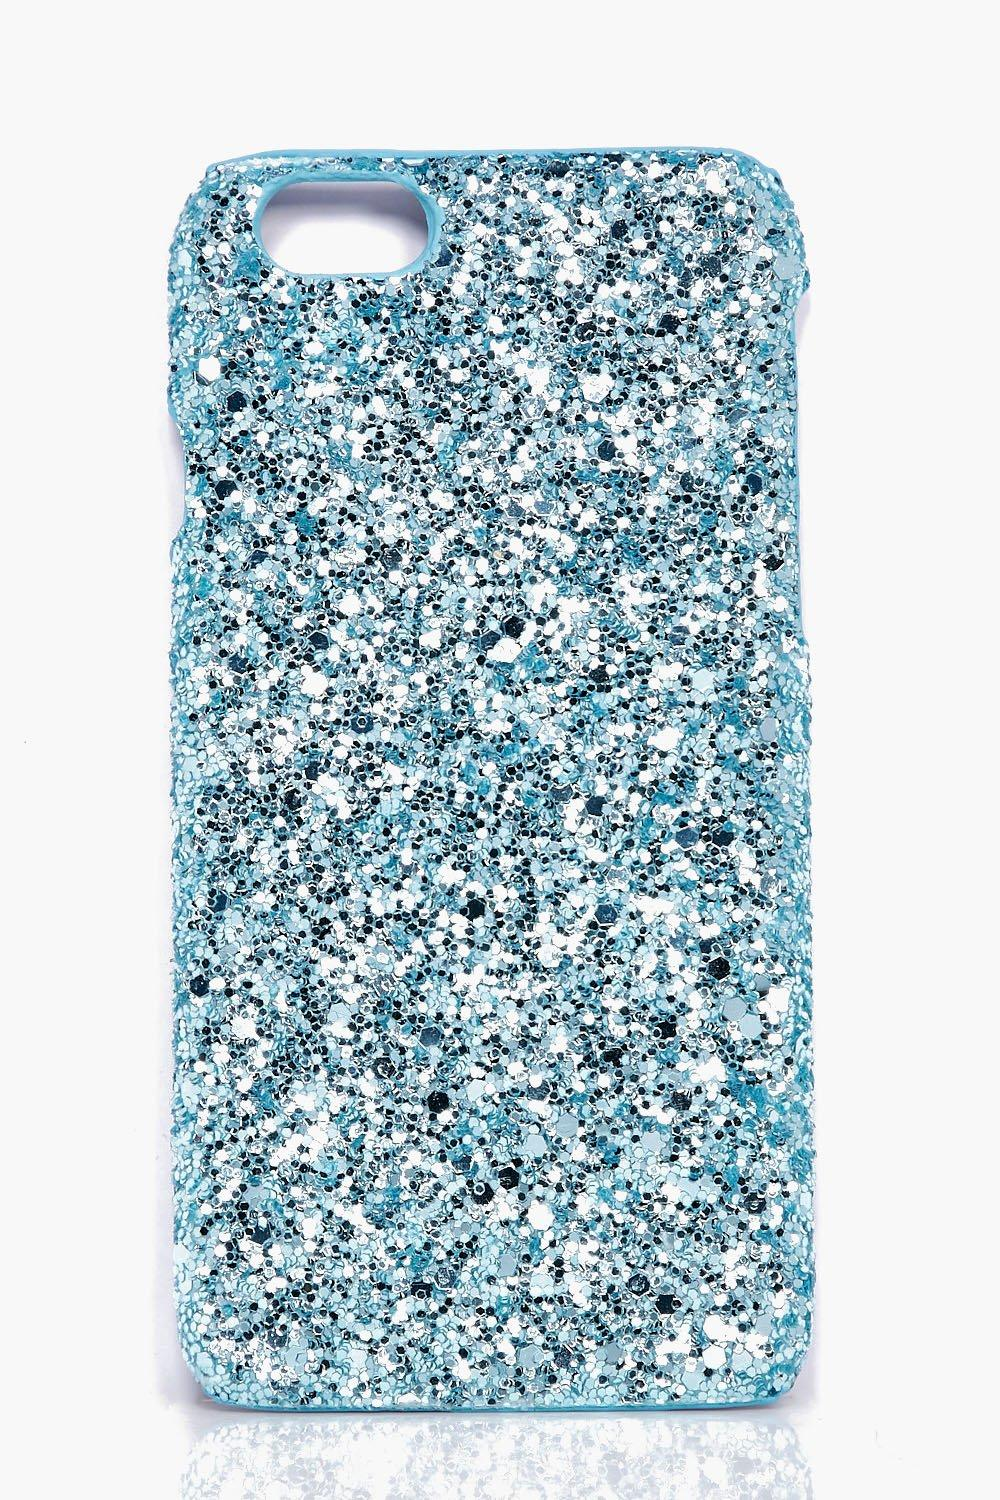 iPhone 6 Case - aqua - Glitter iPhone 6 Case - aqu